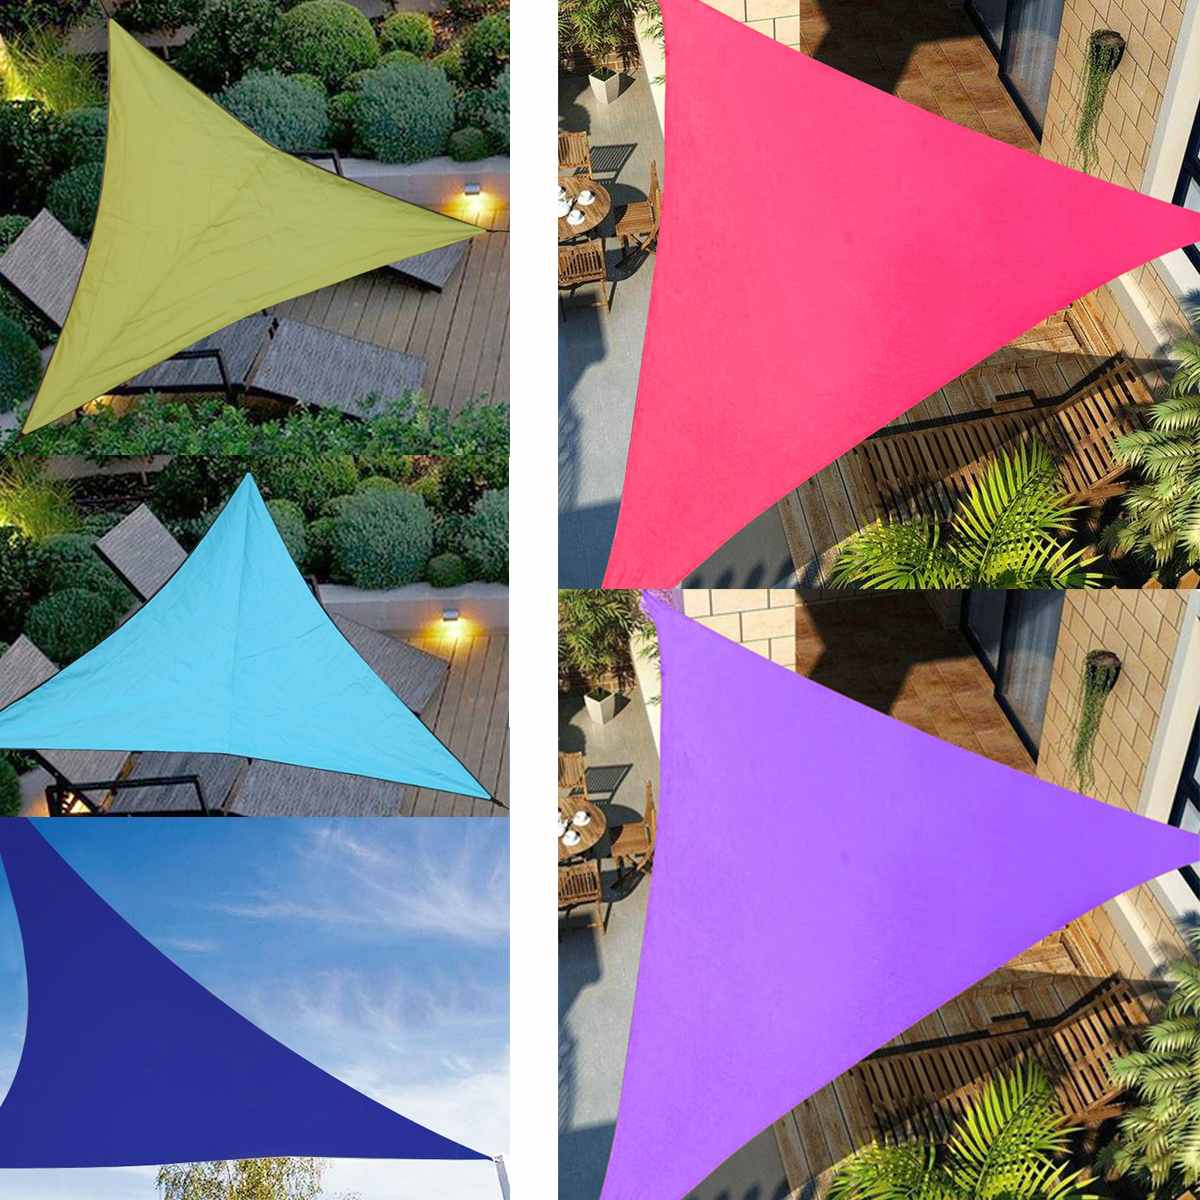 6*6*6 Size Outdoor Shade Sunscreen Waterproof Triangular UV Sun Shade Sail Combination Net Triangle Sun Sail Tent Camping Garden-in Sun Shelter from Sports & Entertainment